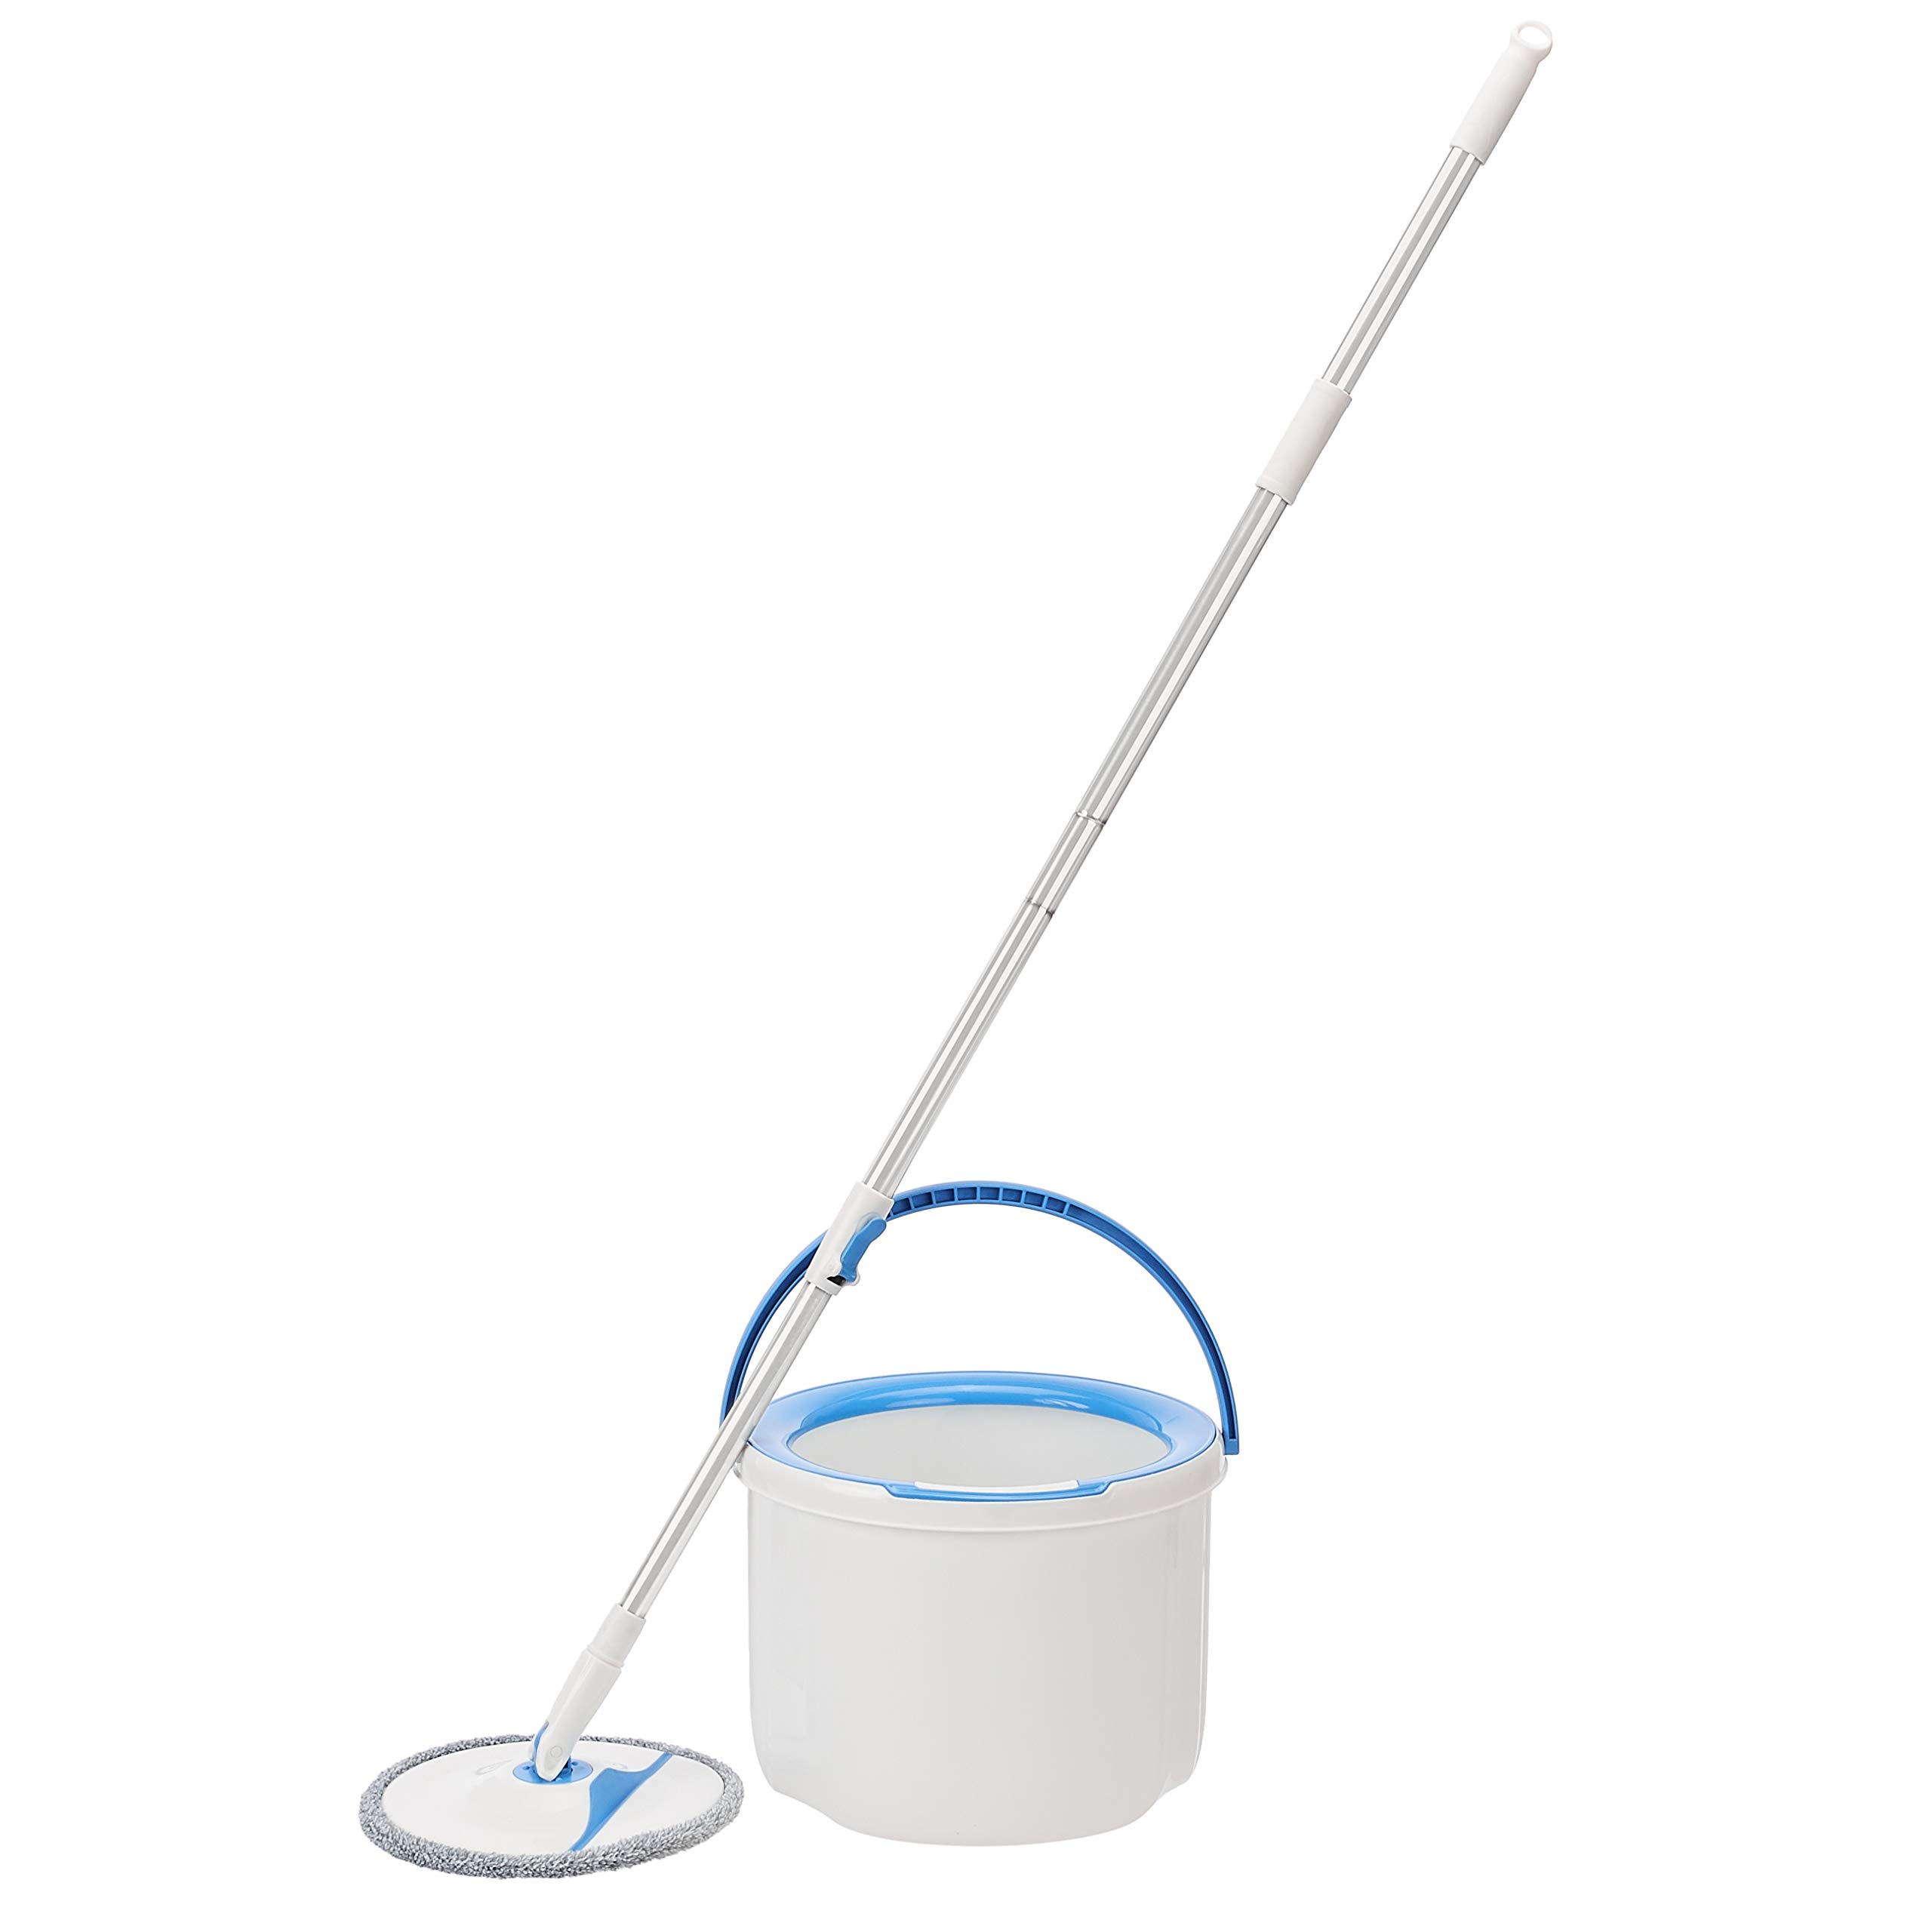 Amazon Basics Spin Mop with Built-In Ringer and Standard Water Bucket